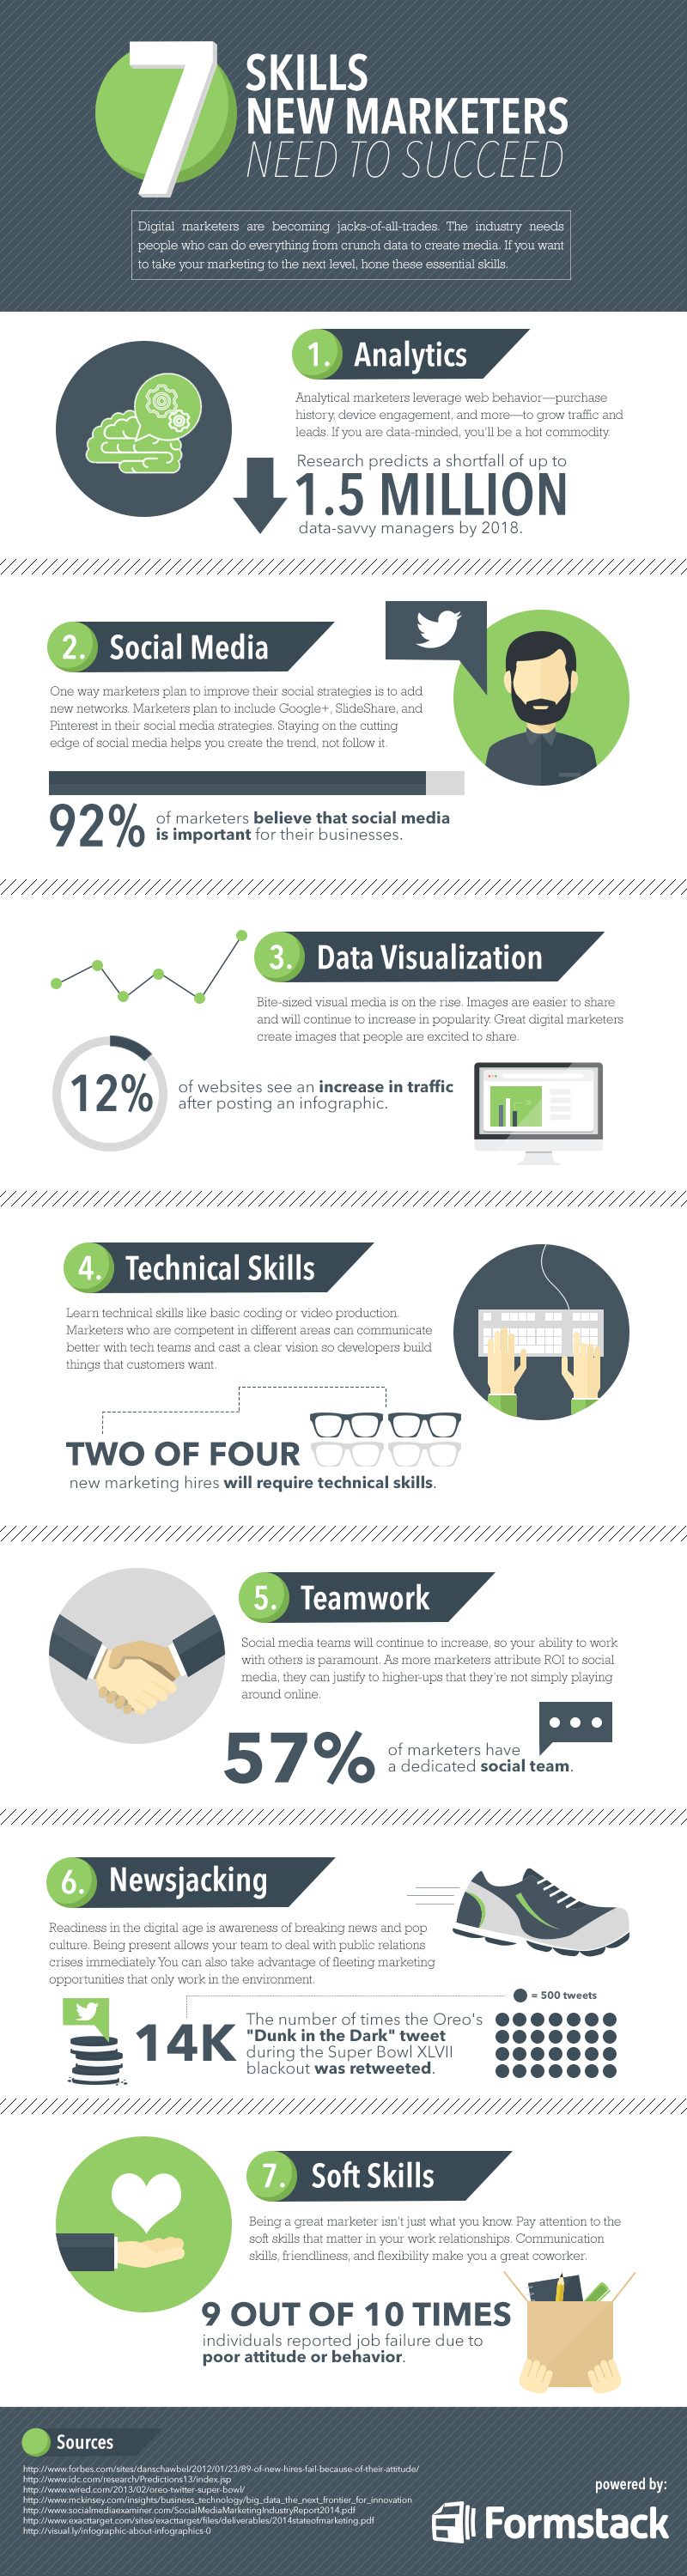 201408-Formstack-NewMarketers-800px